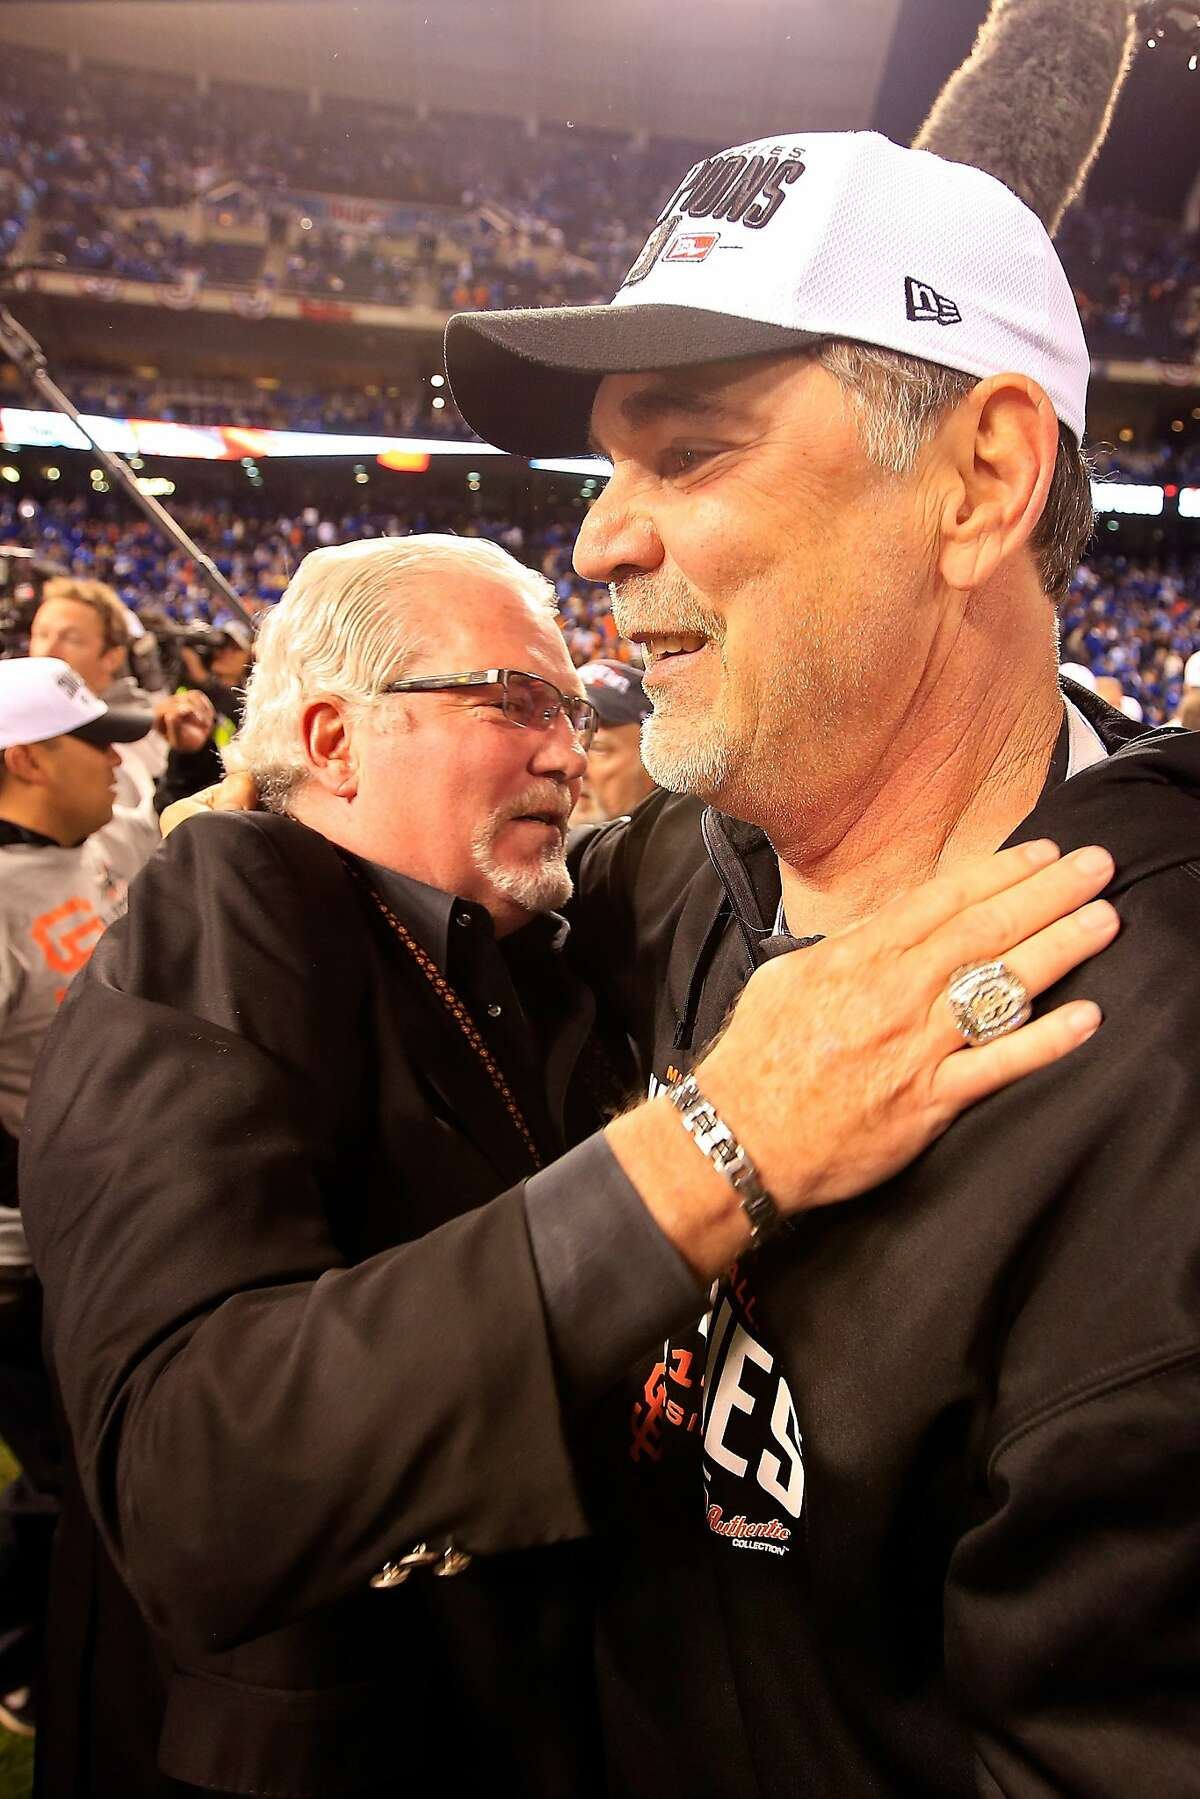 KANSAS CITY, MO - OCTOBER 29: Manager Bruce Bochy #15 of the San Francisco Giants celebrates on the field with general manager Brian Sabean after defeating the Kansas City Royals 3-2 to win Game Seven of the 2014 World Series at Kauffman Stadium on October 29, 2014 in Kansas City, Missouri. (Photo by Jamie Squire/Getty Images)